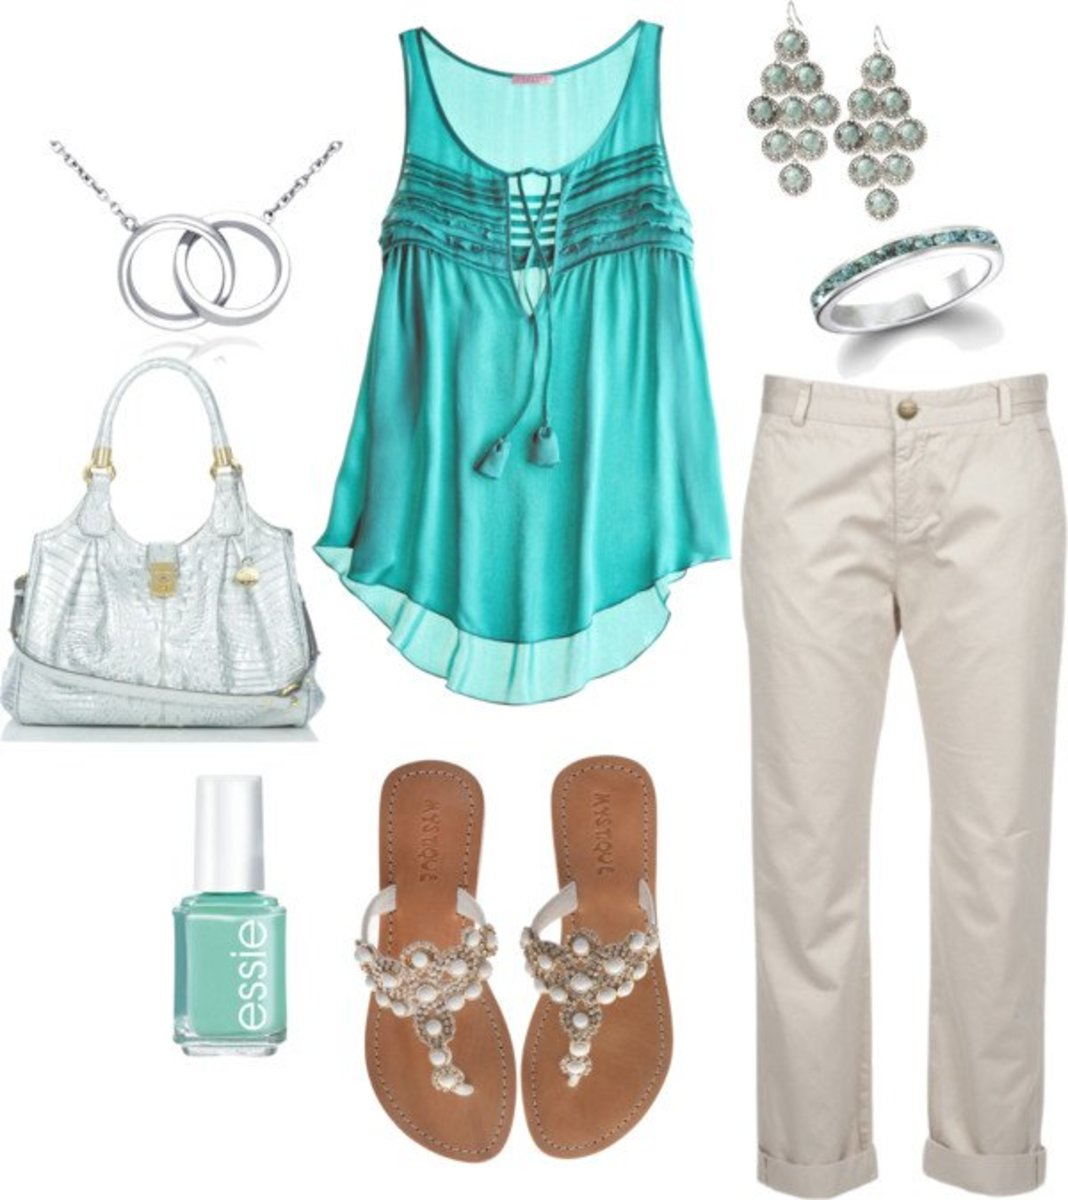 Fashionable summer look with capri pants